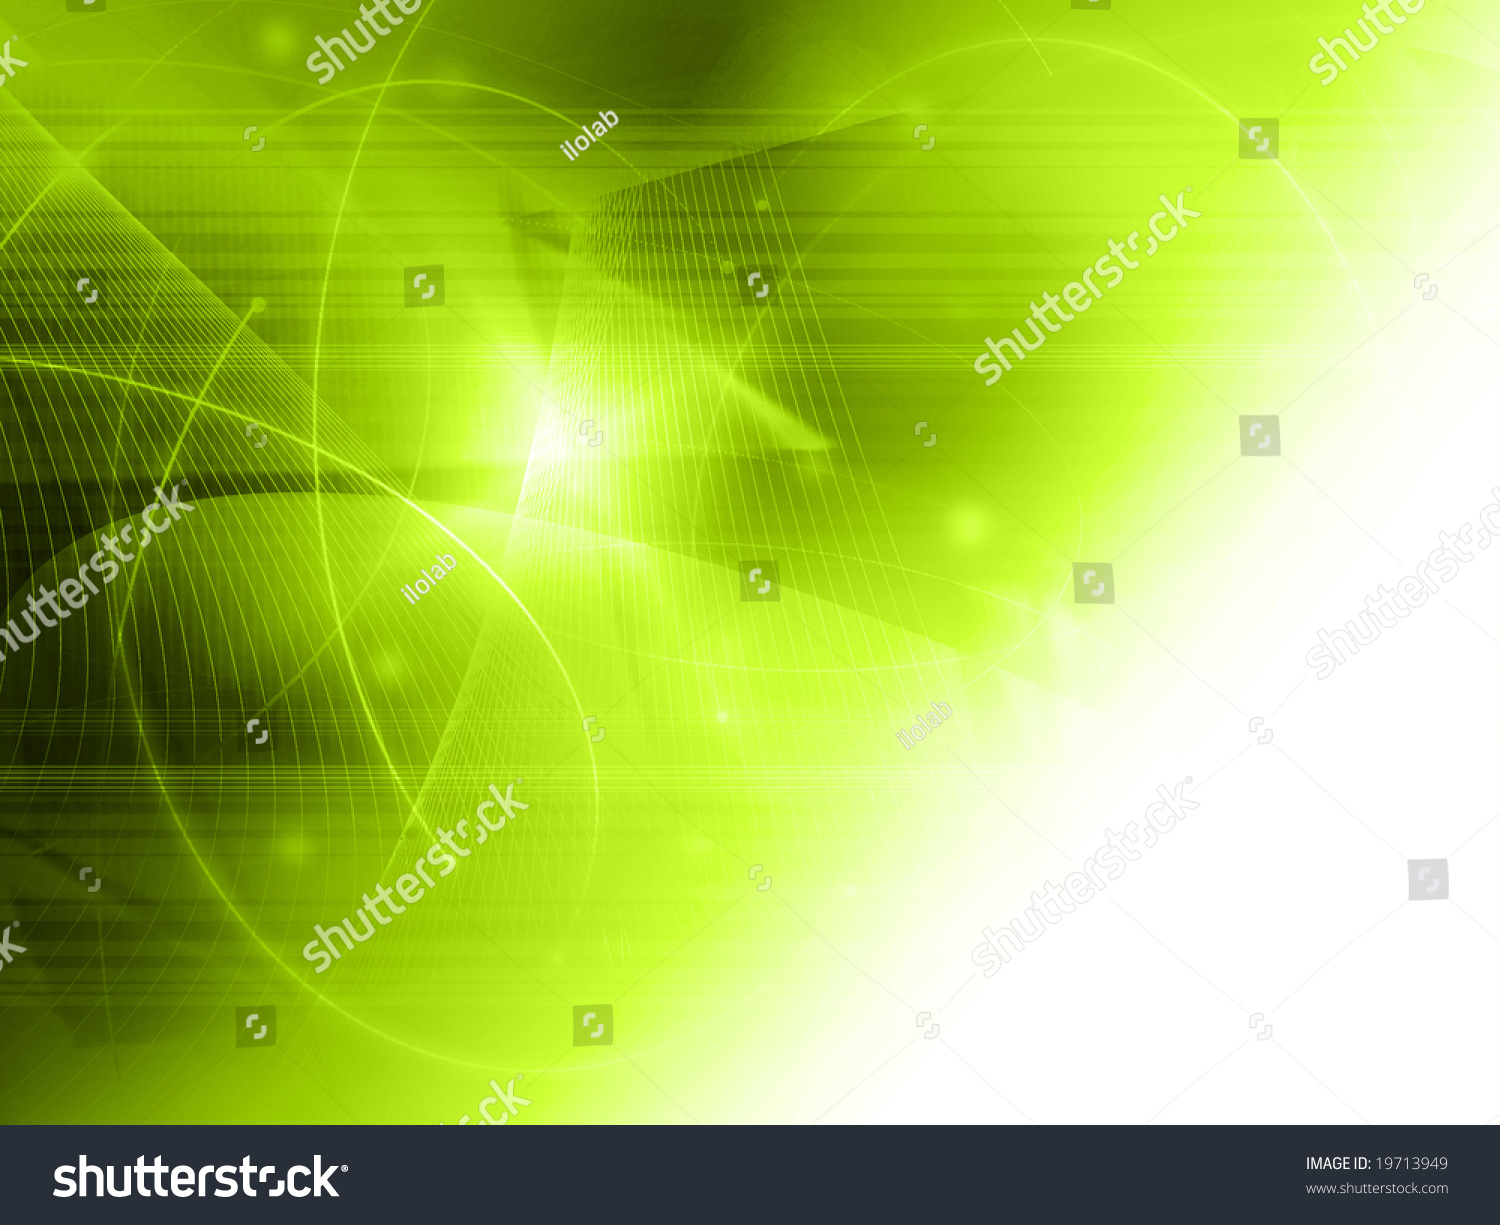 Stream Of Light Wallpaper Streams Light Abstract Cool Waves Background Stock